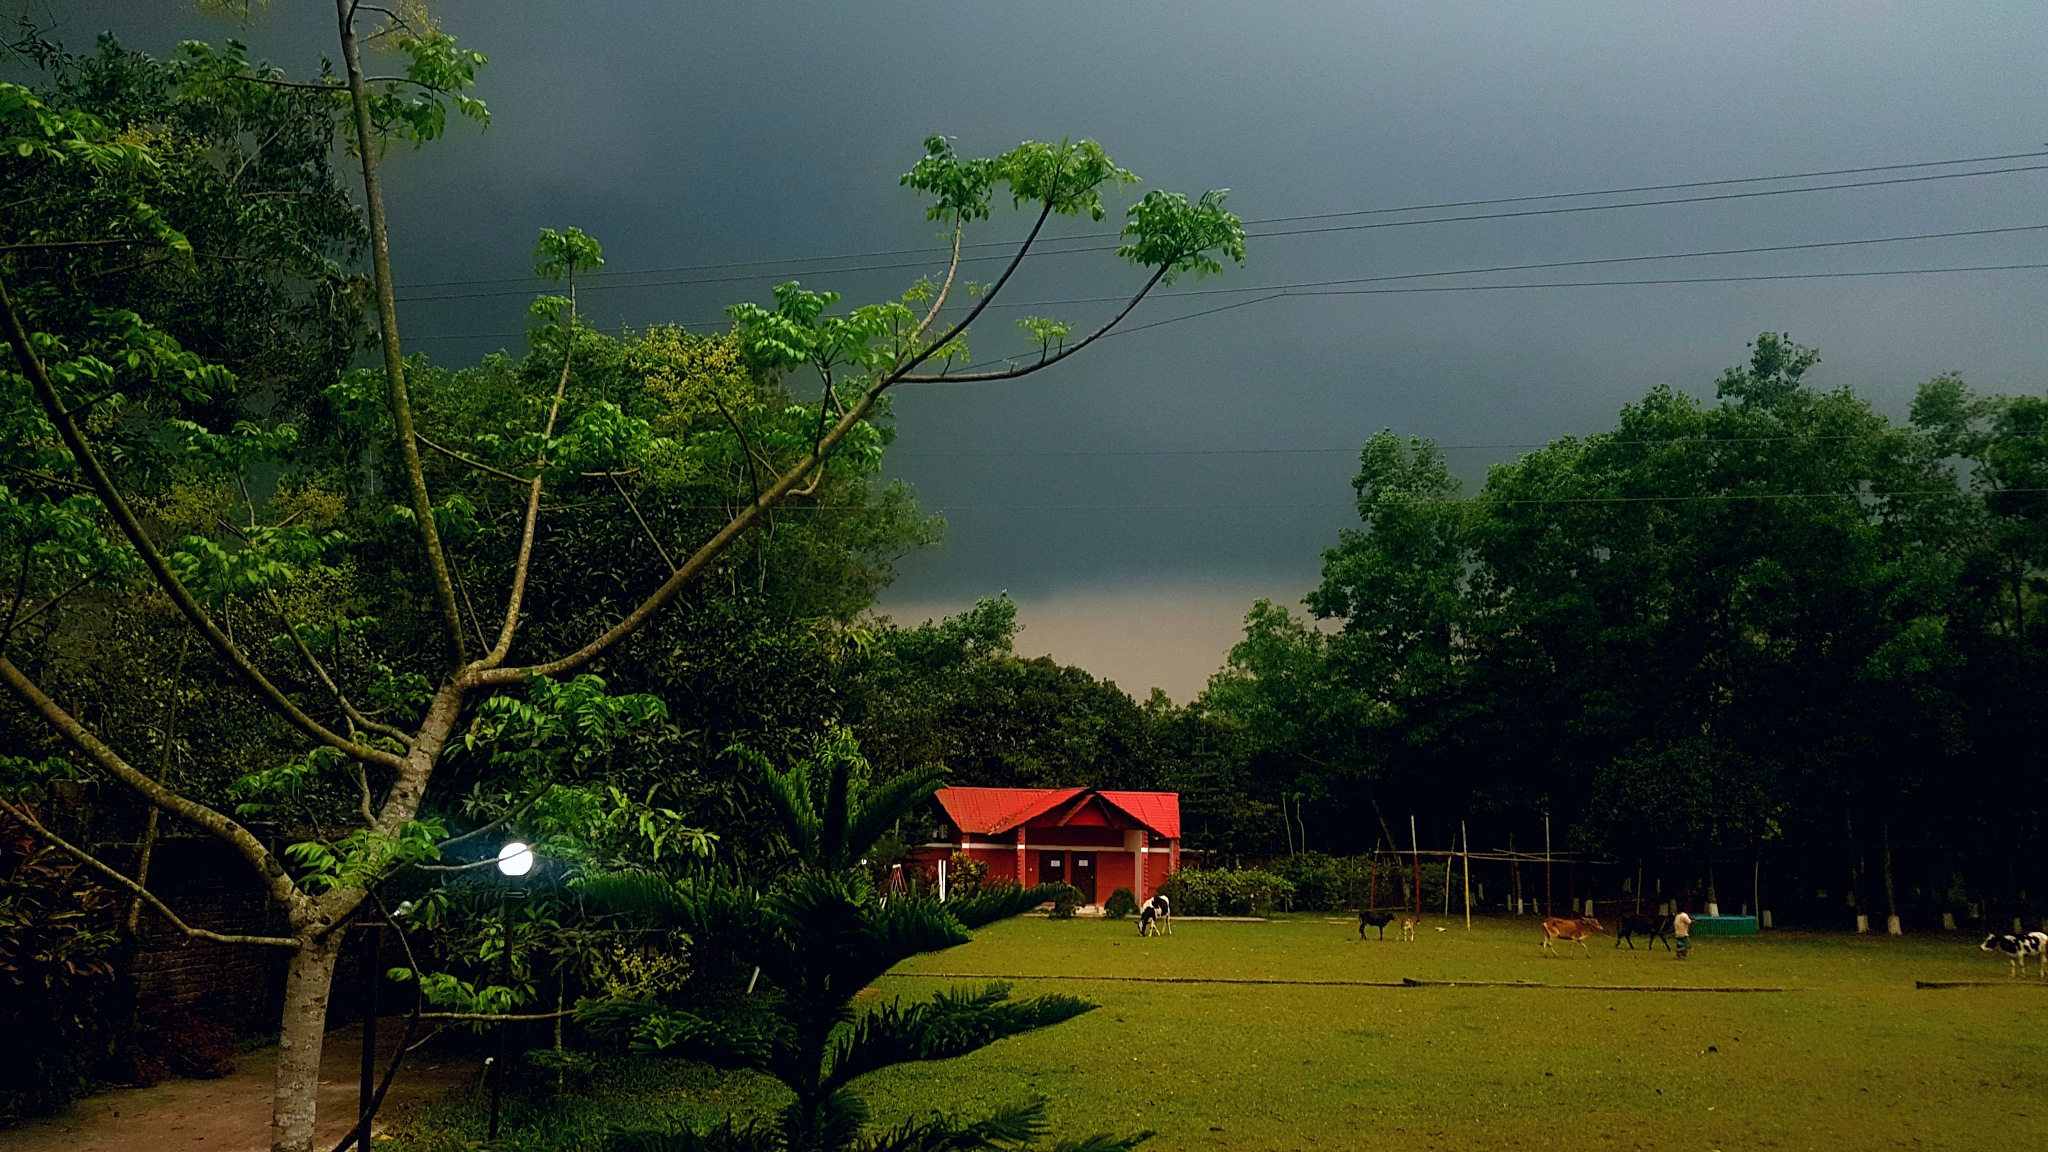 Storm coming  by Md Golam Murshed